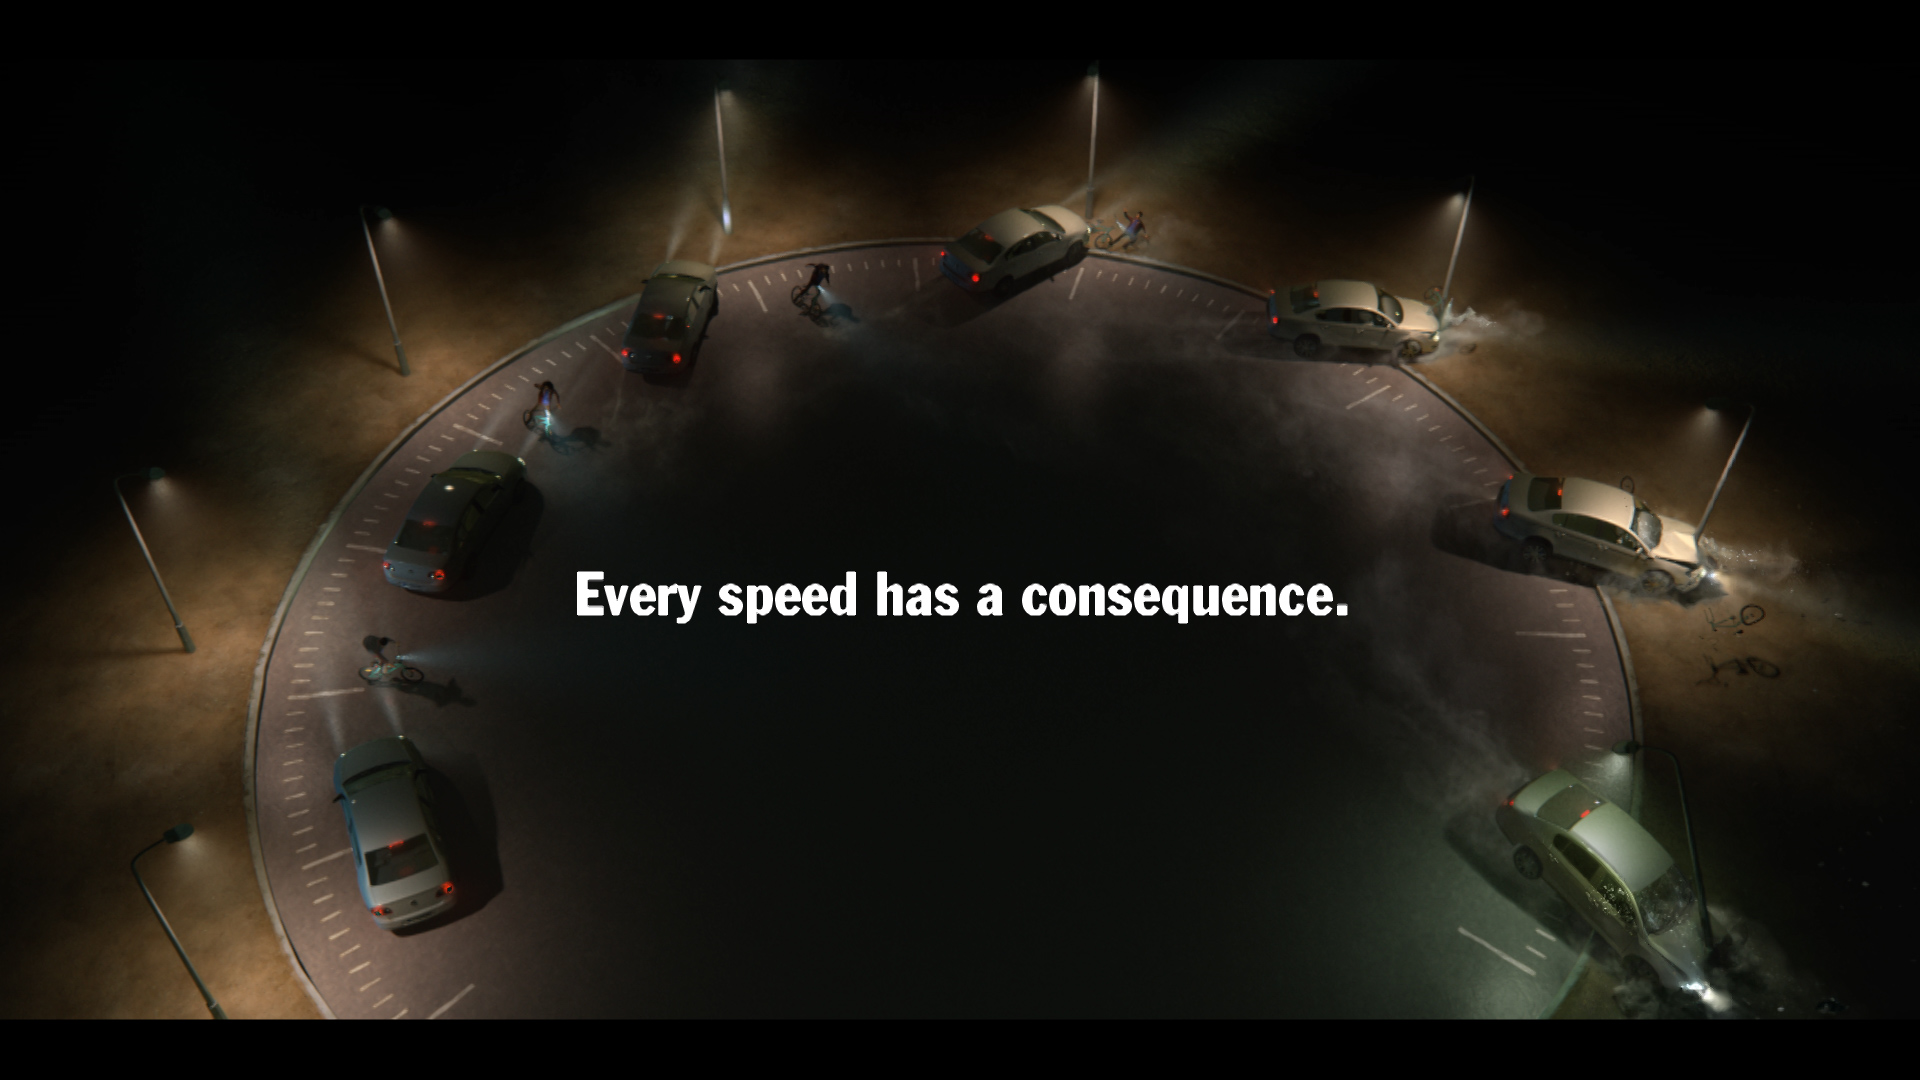 Thumbnail for Every Speed has a Consequence